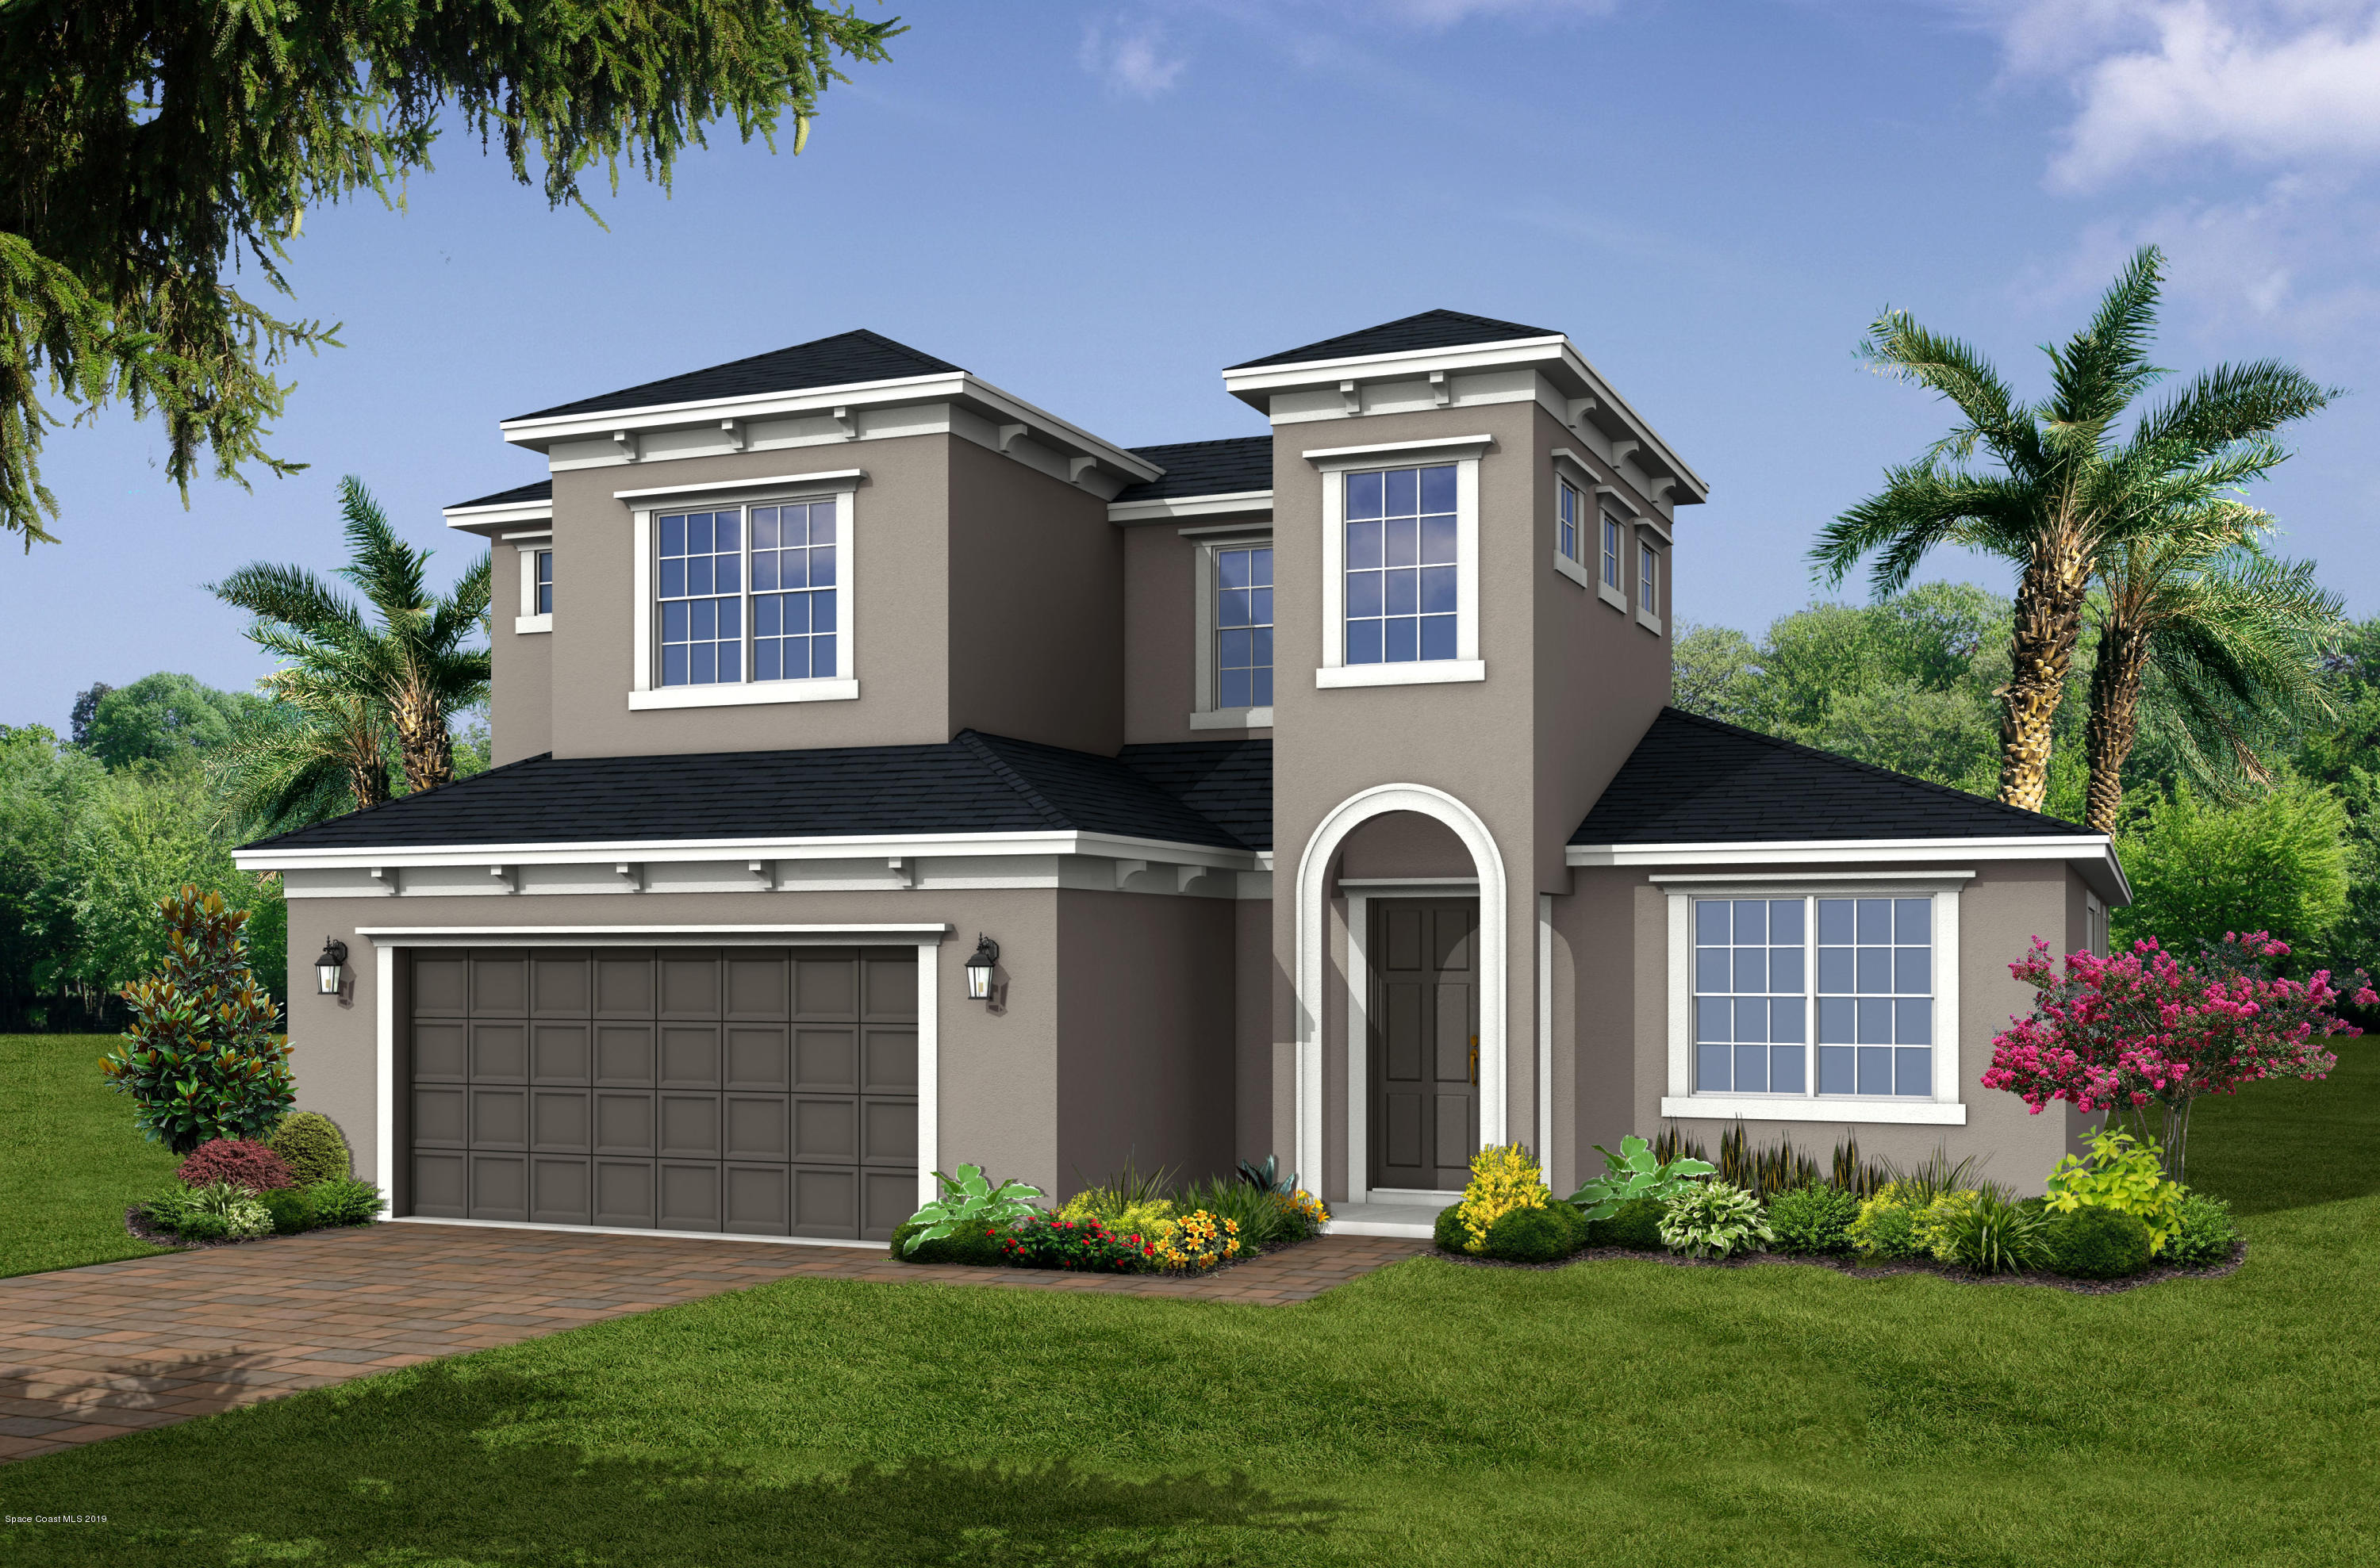 Single Family Homes for Sale at 7424 Poulicny Melbourne, Florida 32940 United States